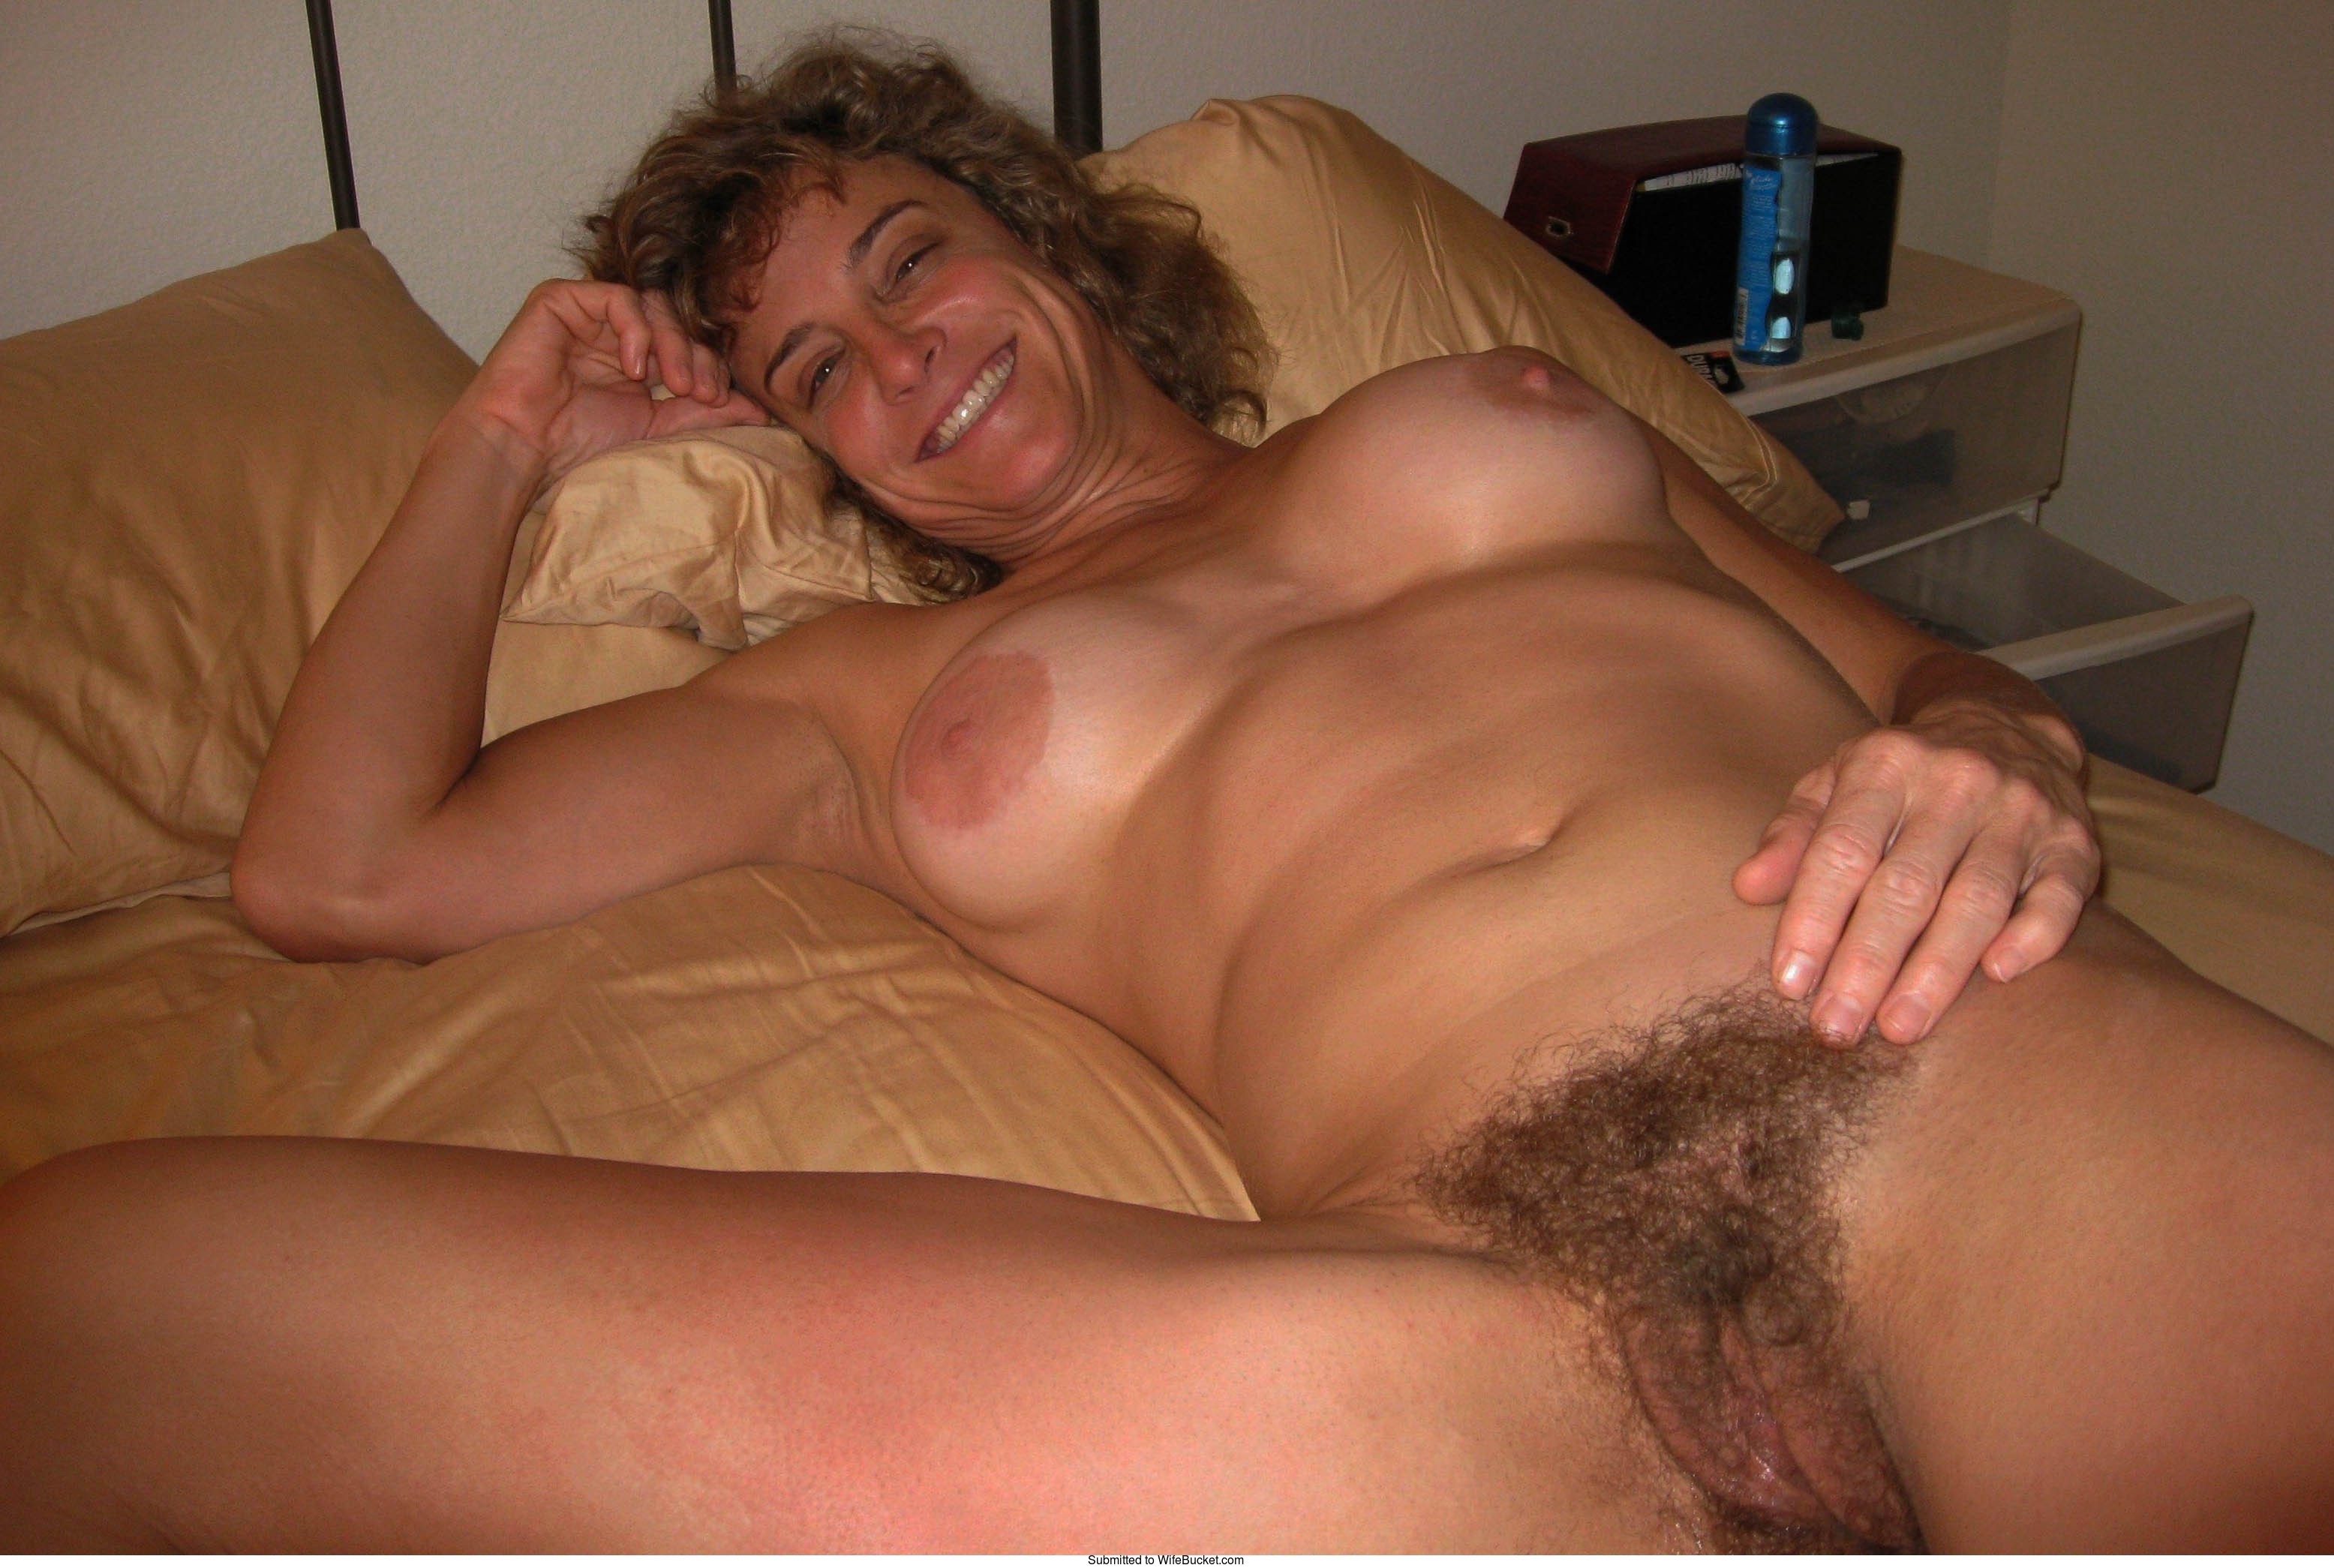 Mixed Pics Of Hairy Amateur Milfs  Wifebucket  Offical -8940